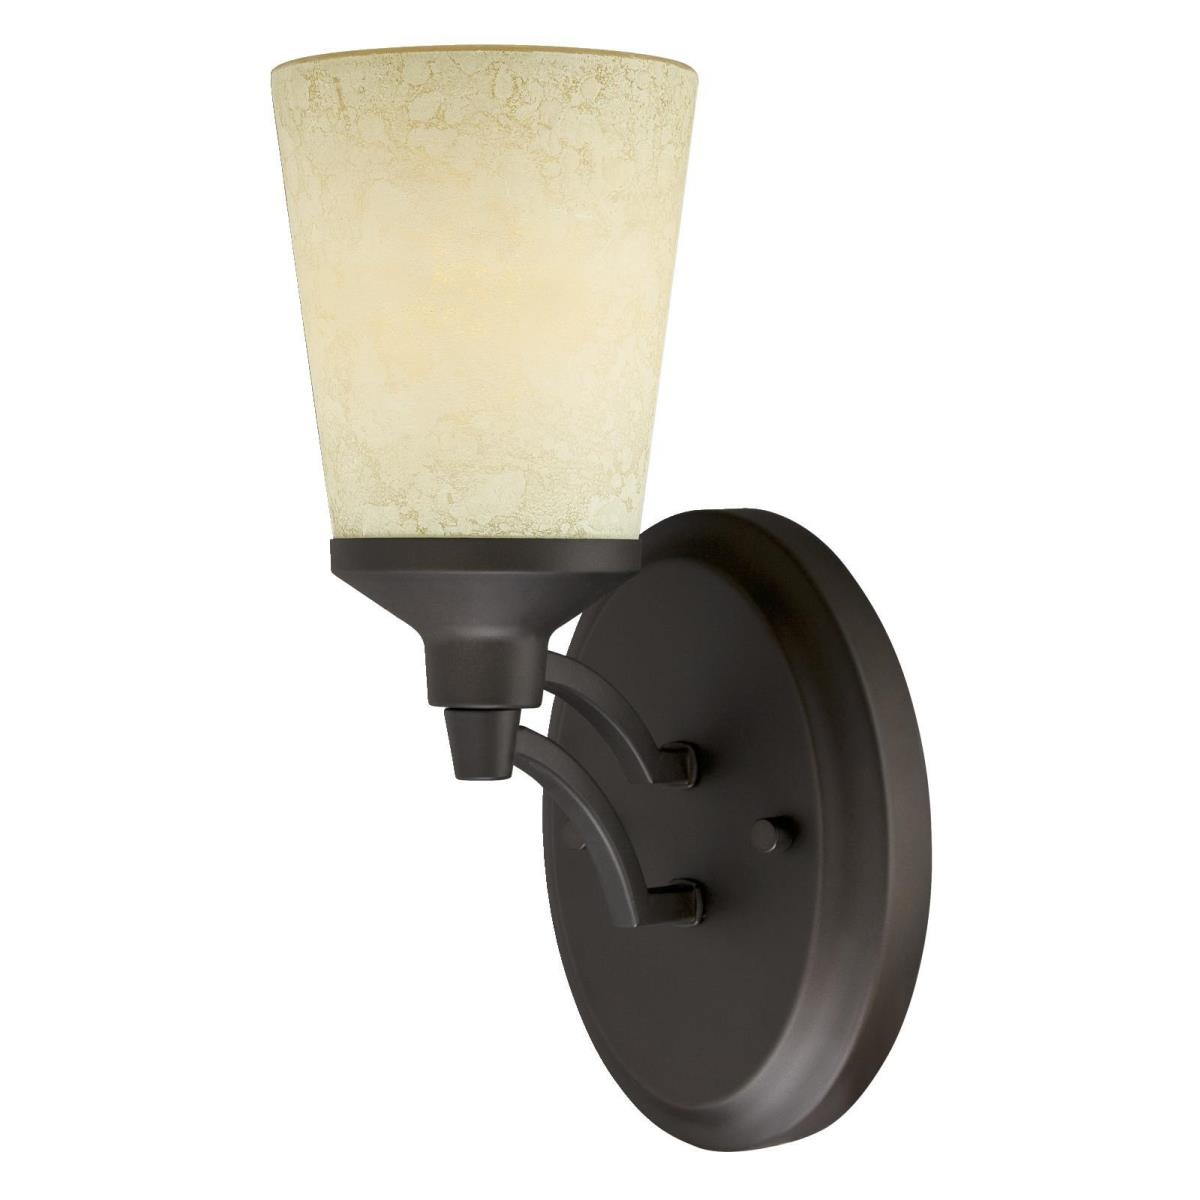 1 Light Wall Oil Rubbed Bronze Finish with Smoldering Scavo Glass